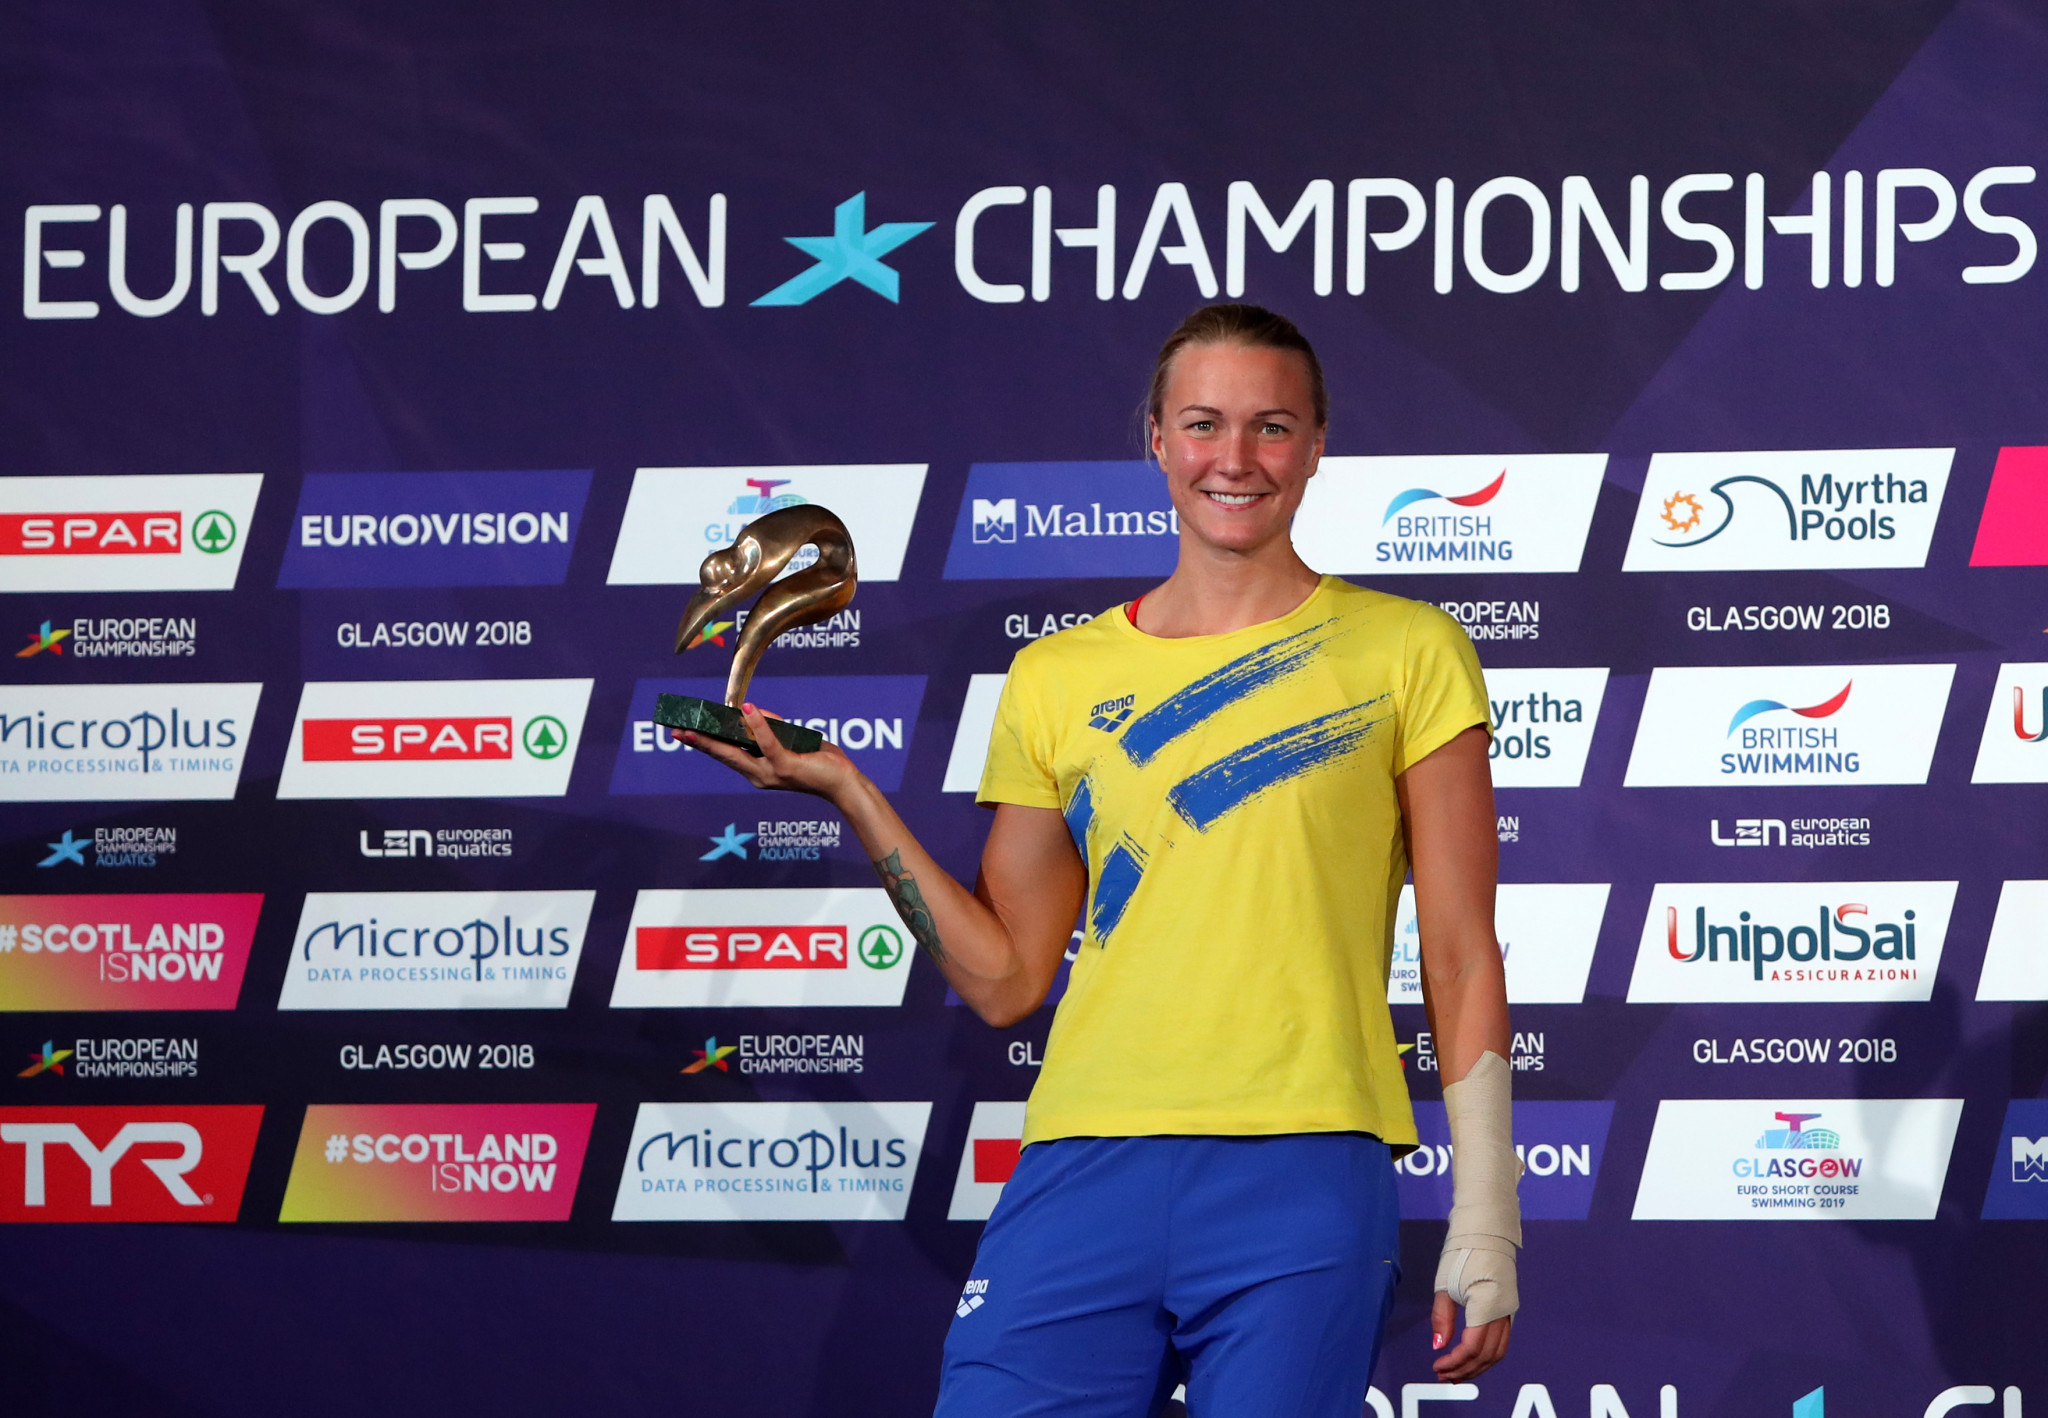 Sweden's Sarah Sjöström gained the women's swimming LEN award after winning four gold medals at the 2018 European Championships in Glasgow ©Getty Images